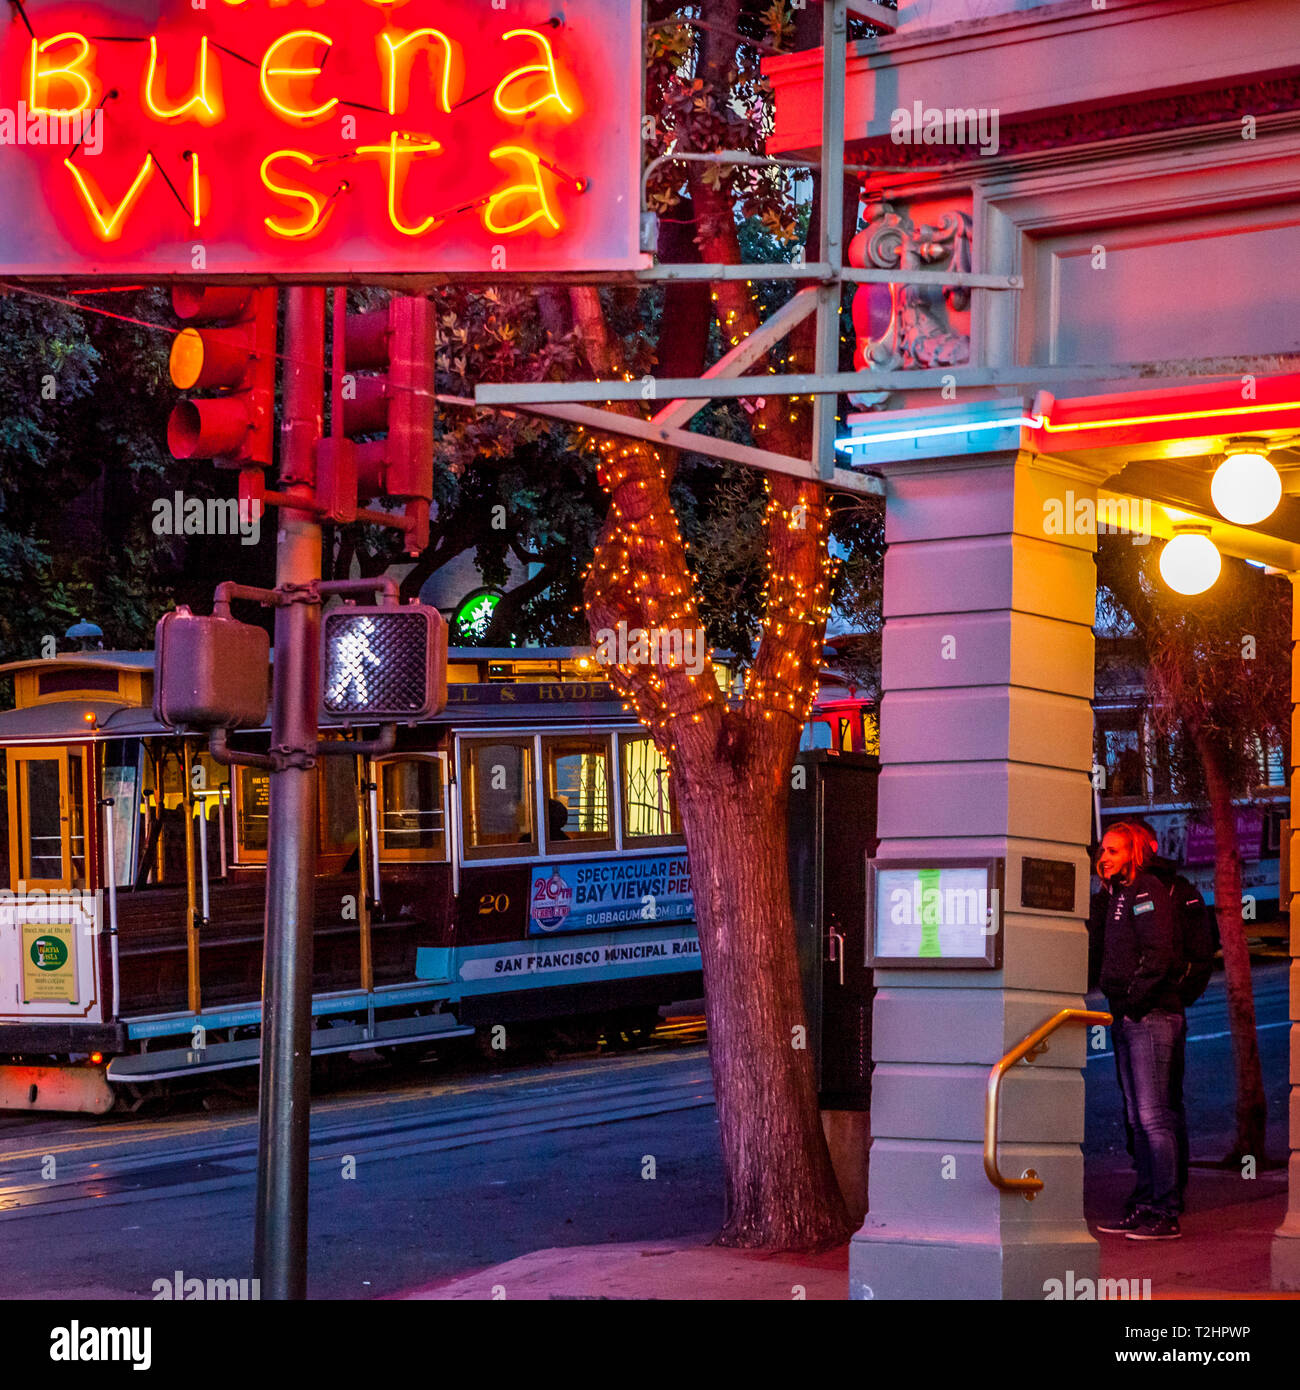 Outside the Buena Vista Grill at Fishermans Wharf in San Francisco on a quiet midweek evening with few tourists. - Stock Image